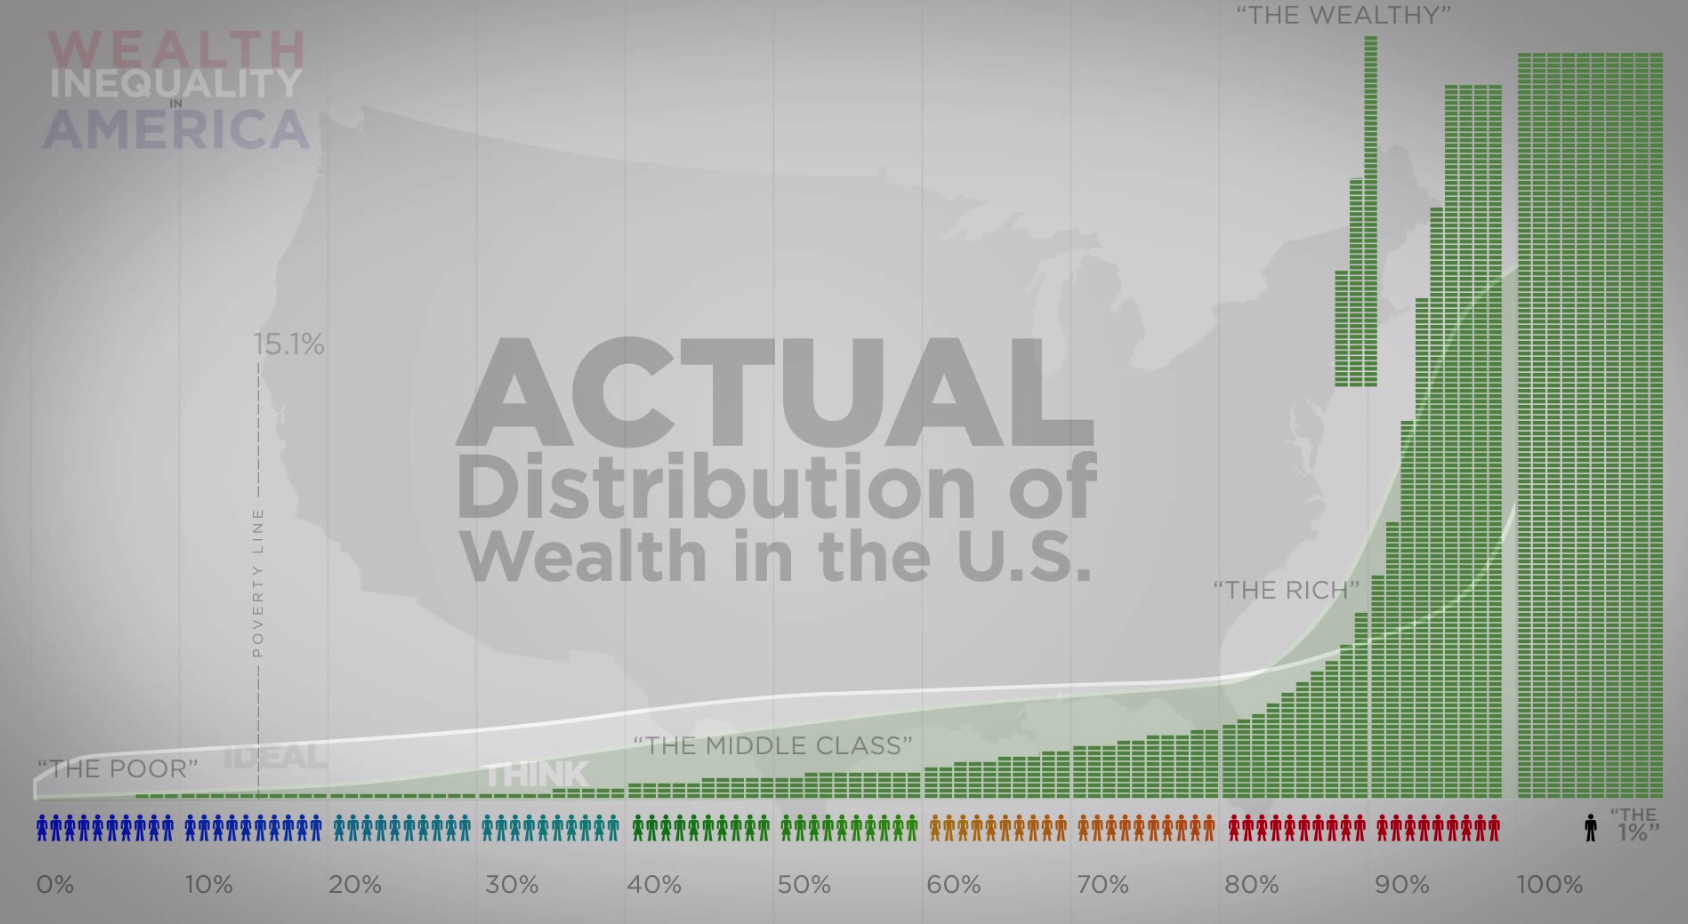 image of inequal wealth distribution in the USA